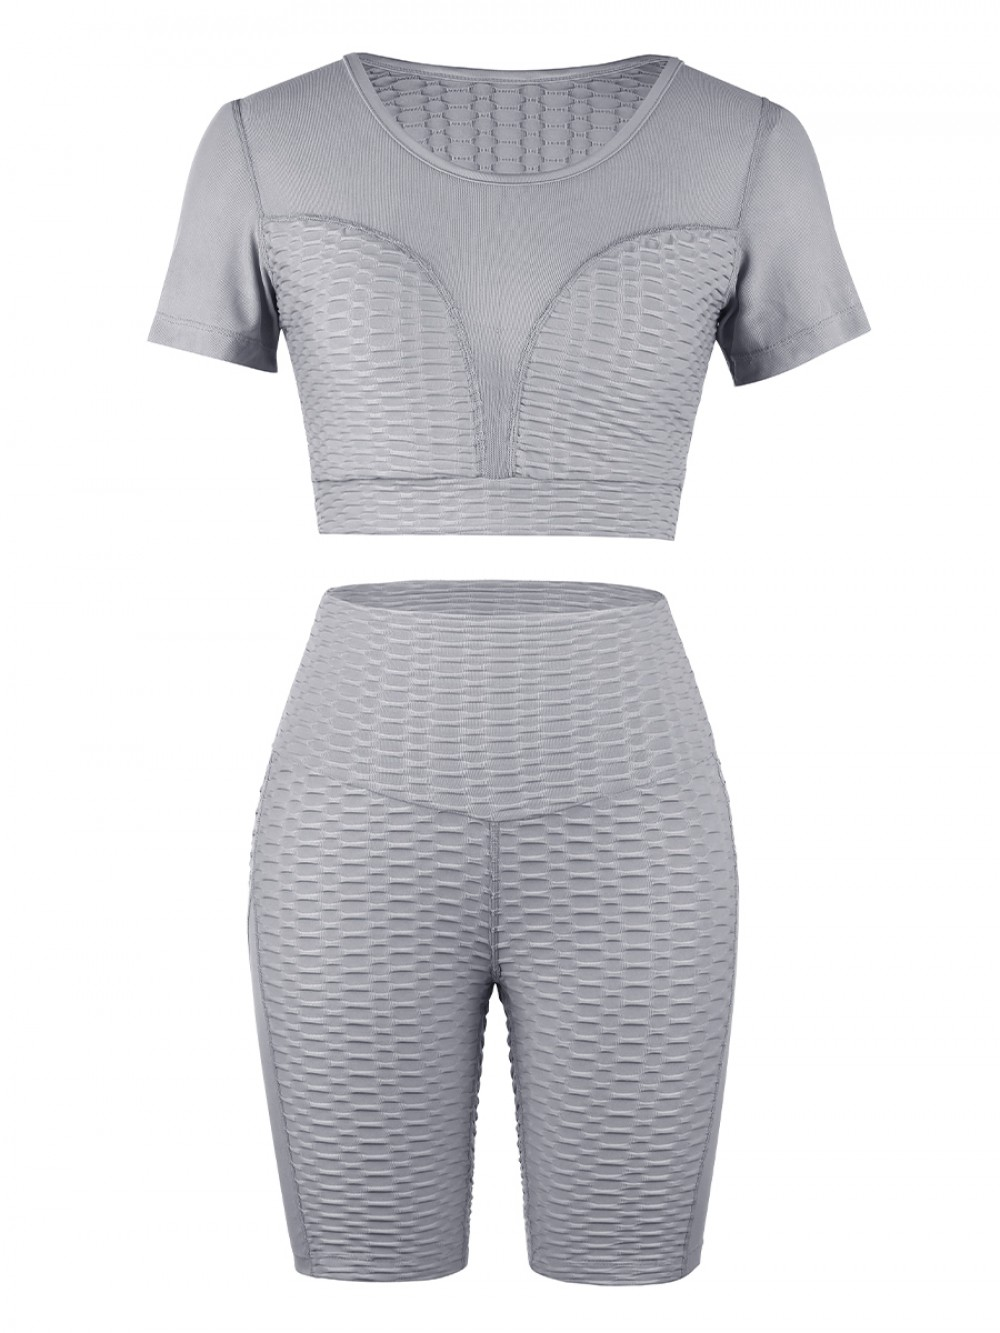 Gymnastic Gray Sports Suit Short Sleeve High Rise Sweat Absorption